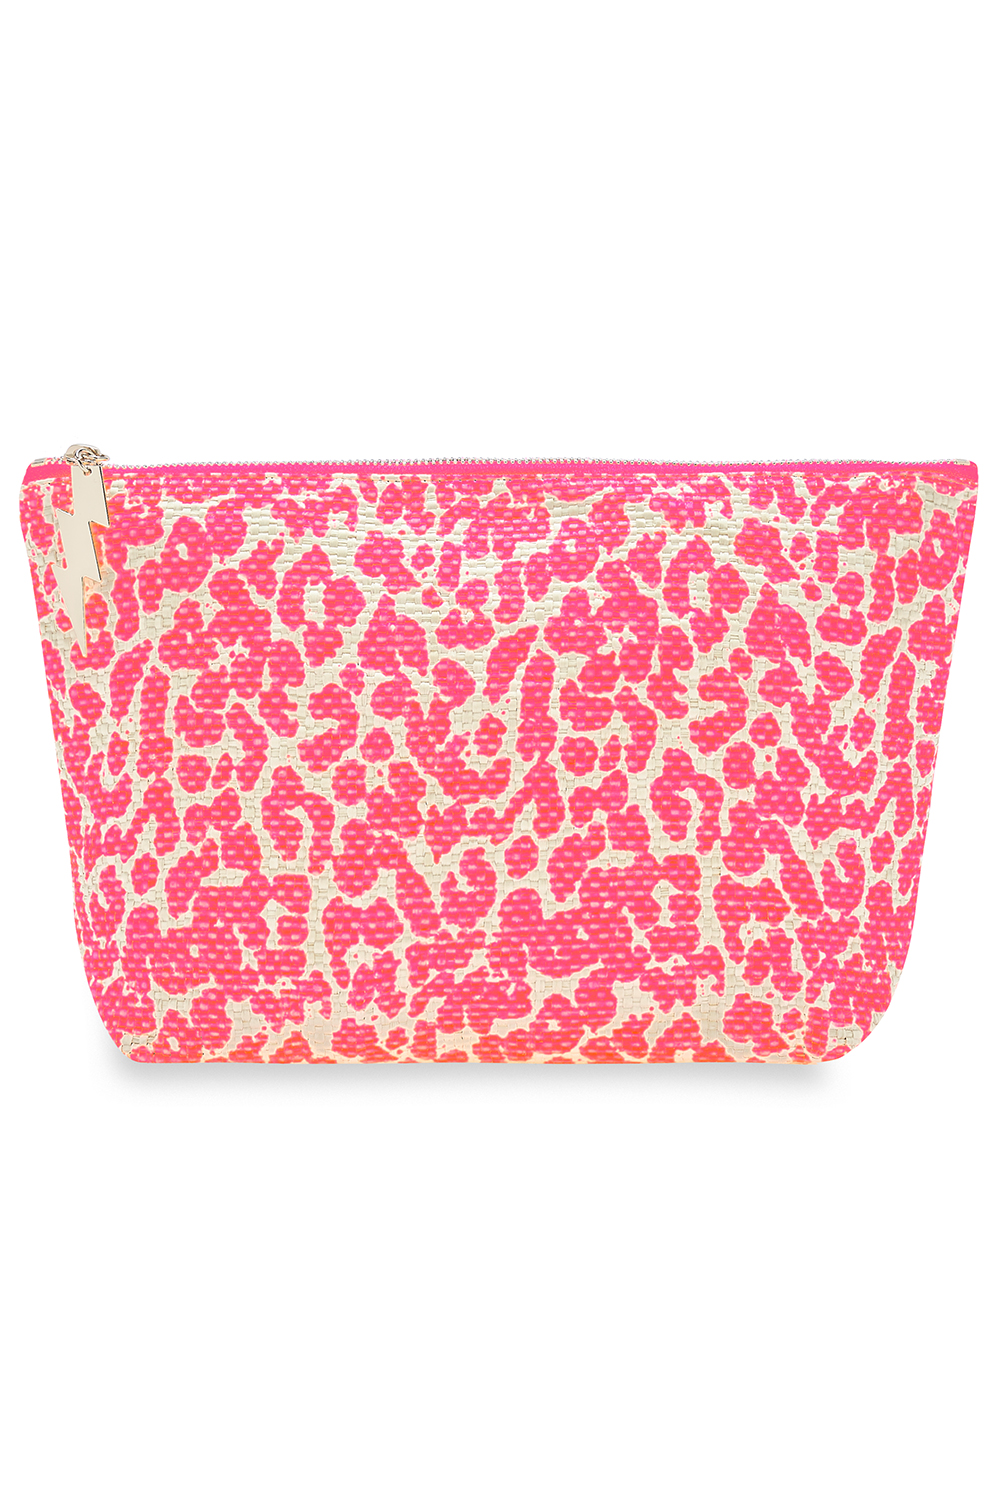 Large_Pink_&_Cream_Leopard_Washbag_1a.jpg